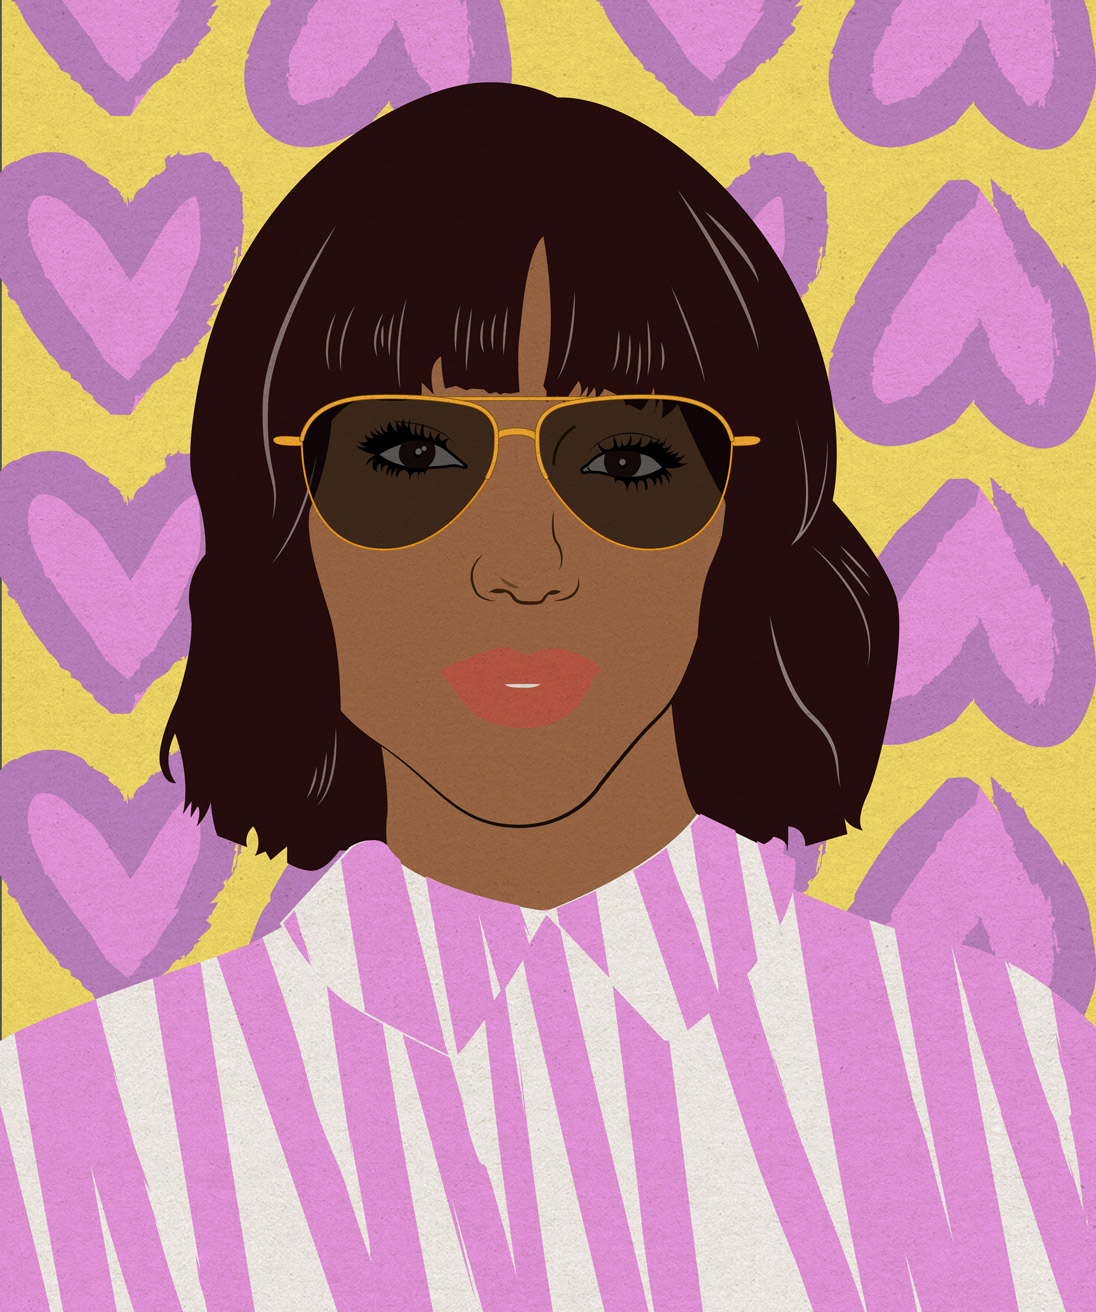 Heart-shaped face? Opt for wider-on-top frames and a bob that hits right below the jawline